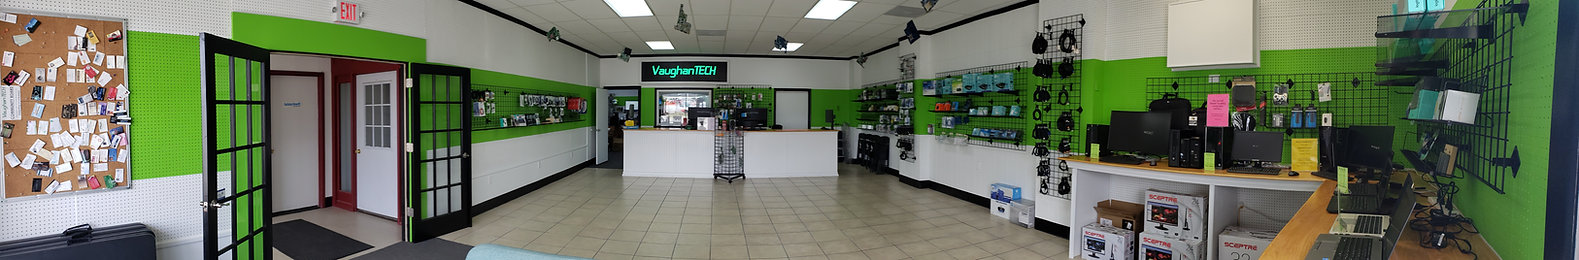 VaughanTECH-Showroom.jpg